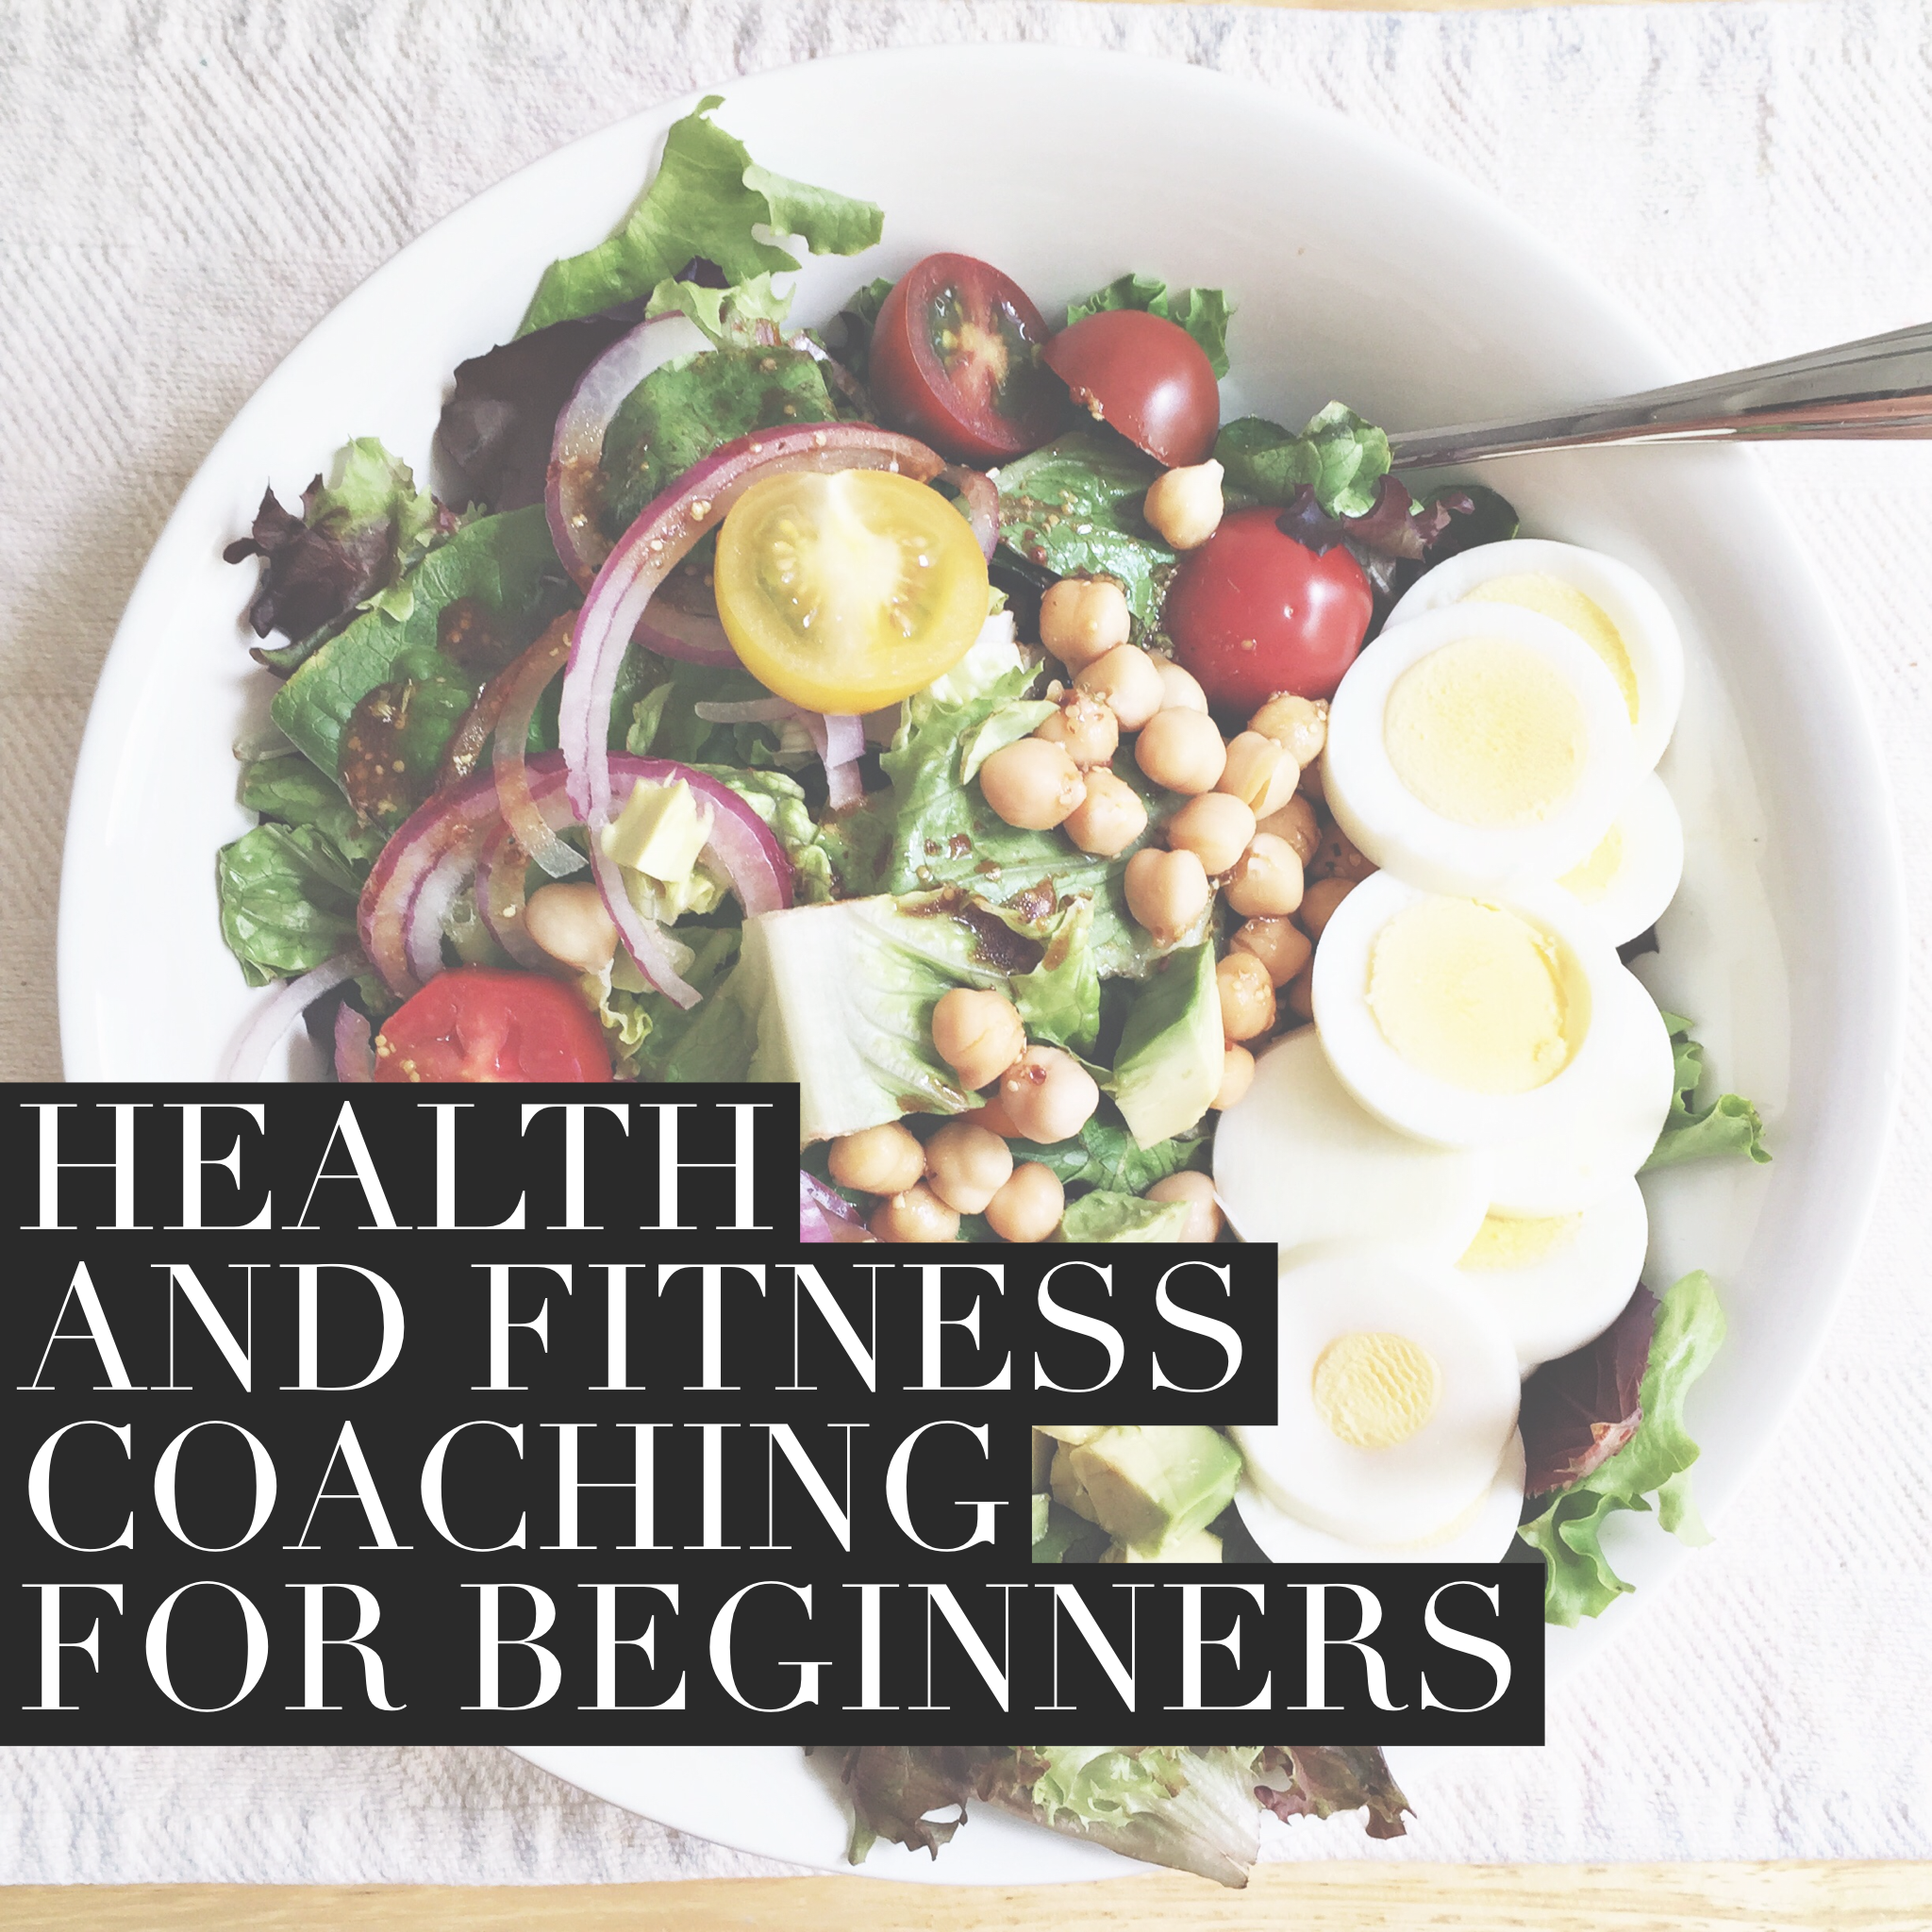 health and fitness coaching for beginners